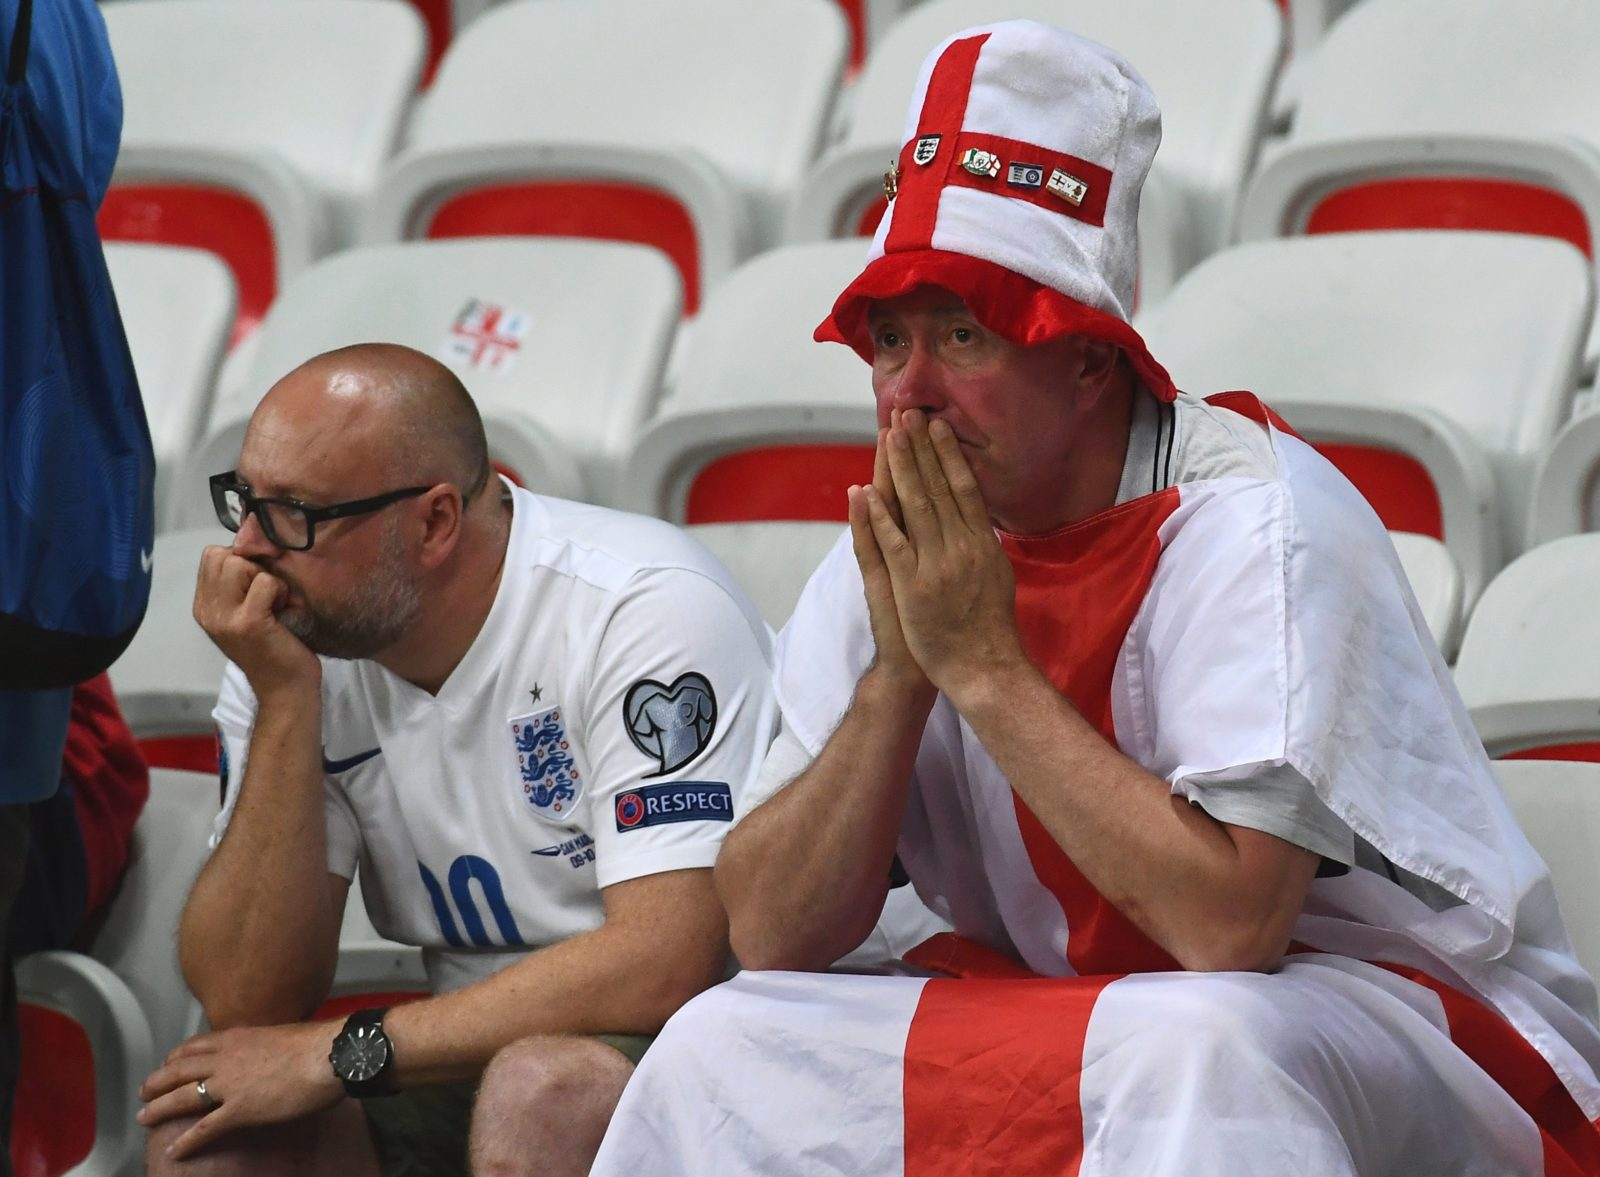 England supporters react after the Euro 2016 round of 16 football match between England and Iceland at the Allianz Riviera stadium in Nice on June 27, 2016. / AFP / ANNE-CHRISTINE POUJOULAT (Photo credit should read ANNE-CHRISTINE POUJOULAT/AFP/Getty Images)